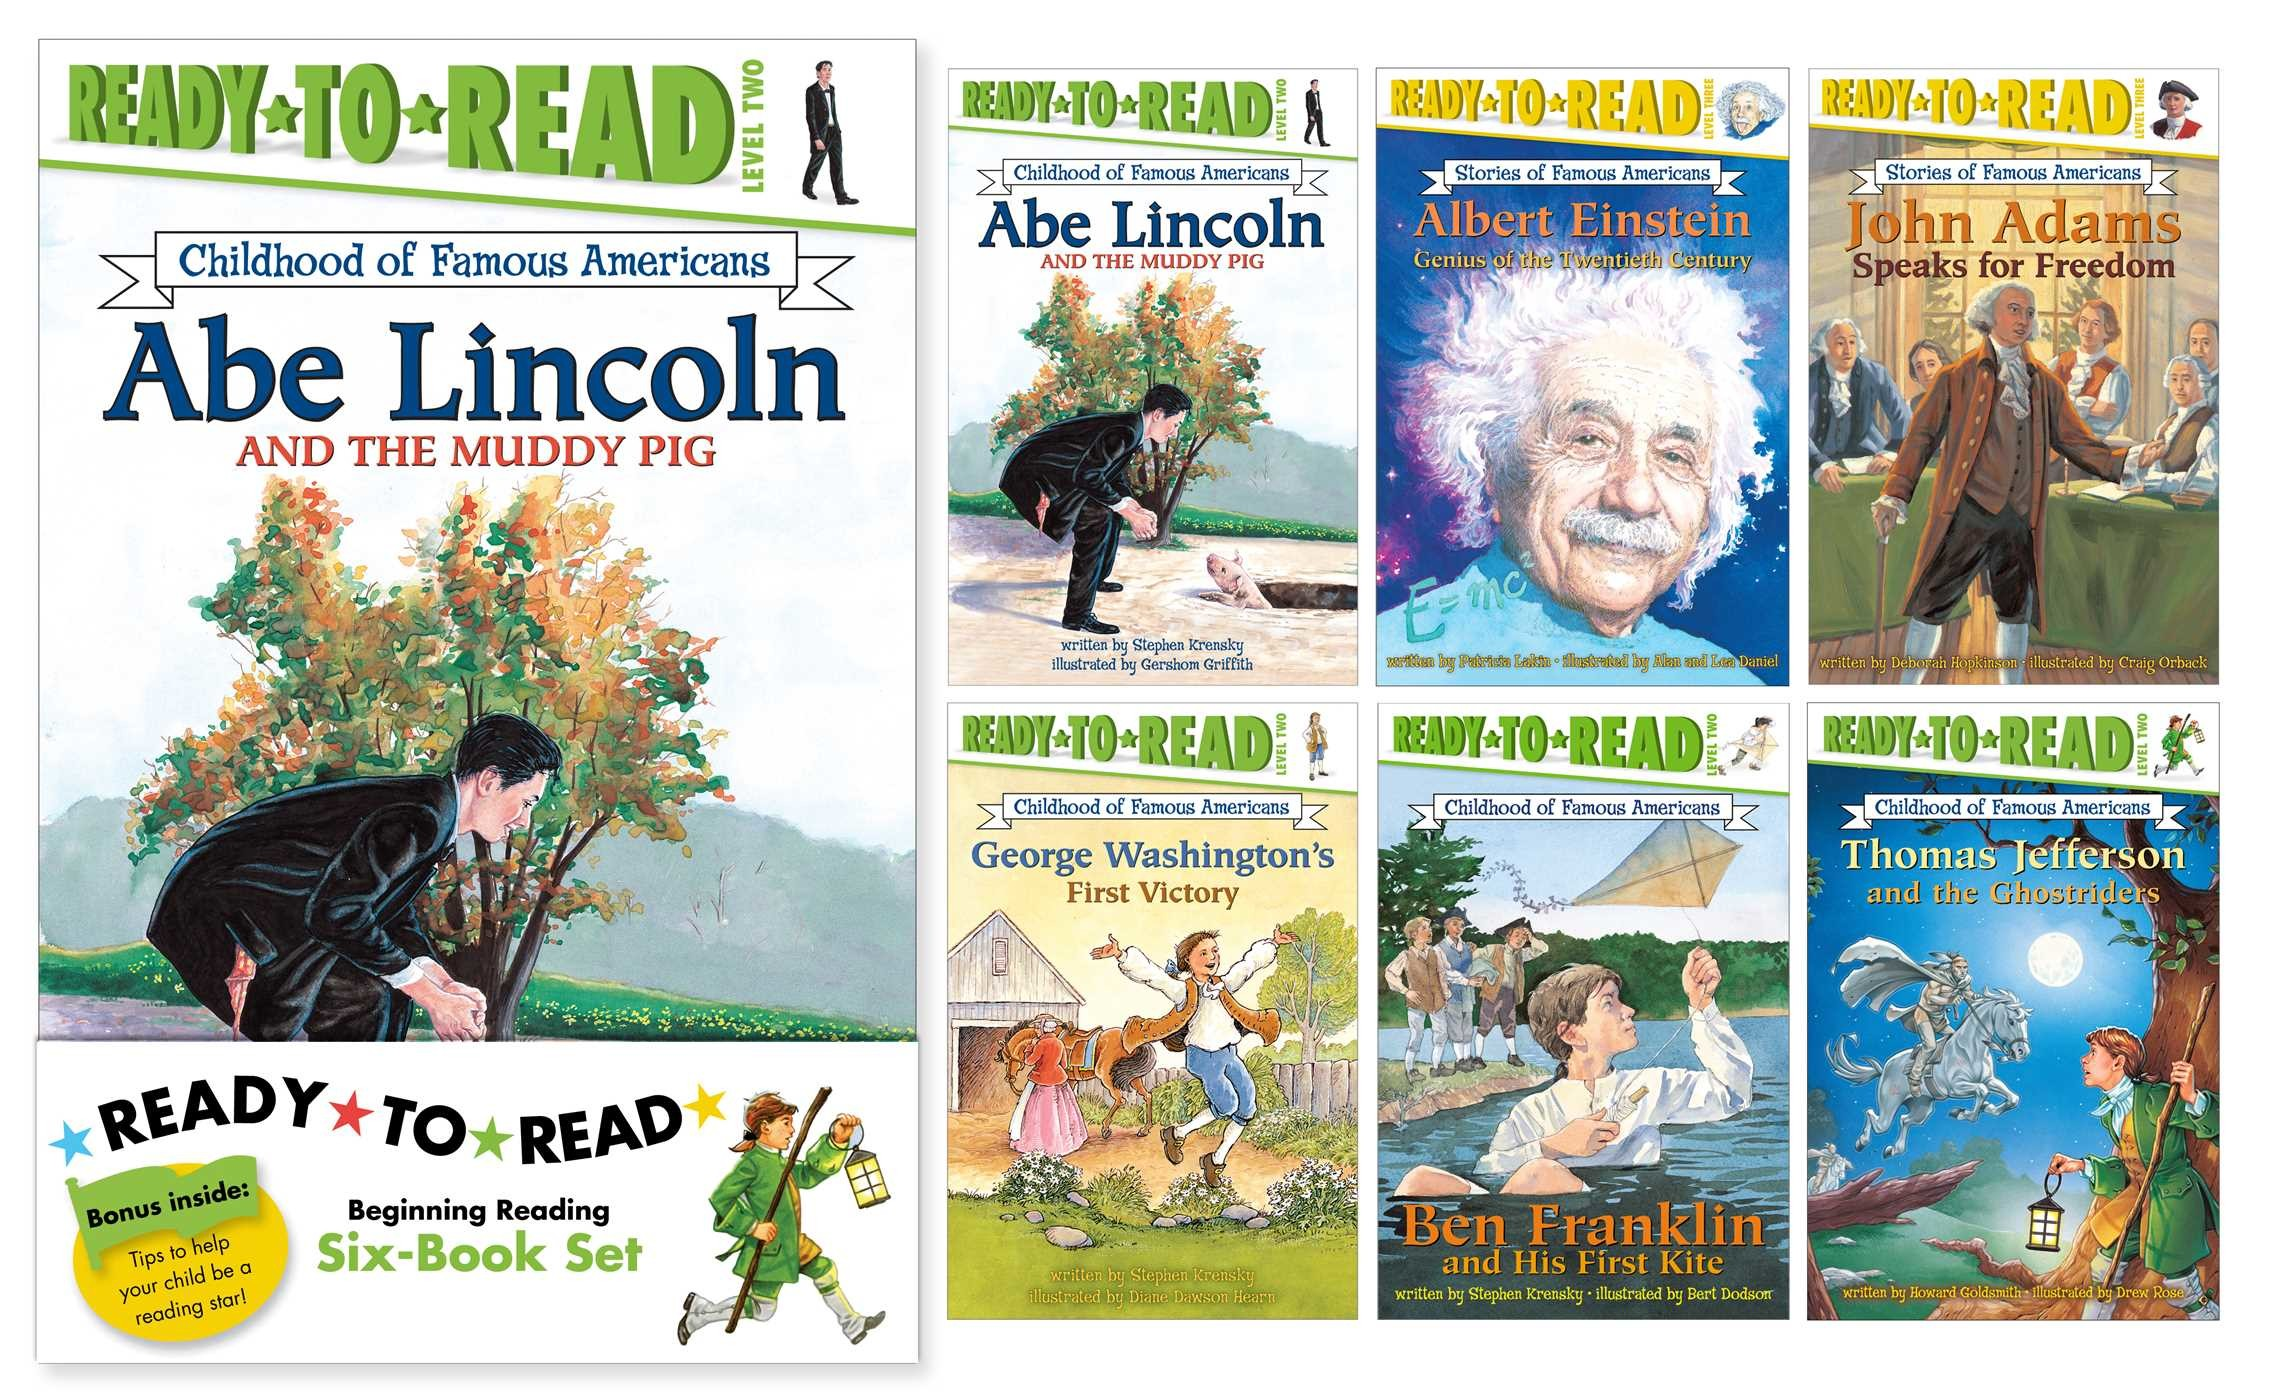 Childhood of famous americans ready to read value pack 9781442494404.in01